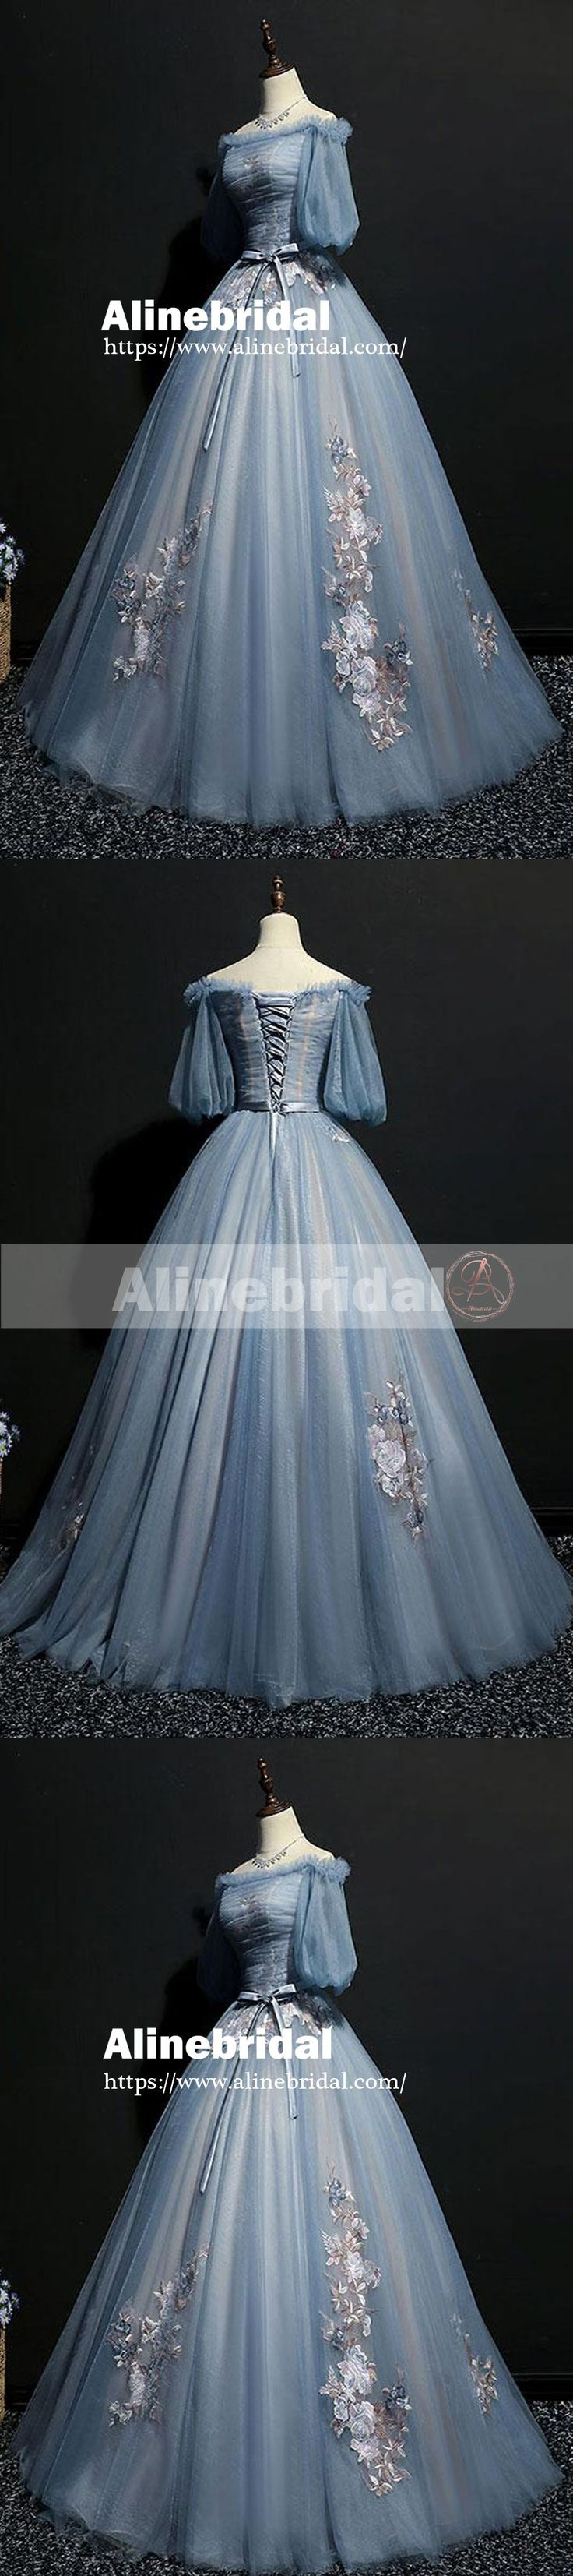 Vintage Princess Off Shoulder Half Sleeve Sky Blue Appliques Ball Gown Prom Dresses,PD00076 #vintagepromdresses